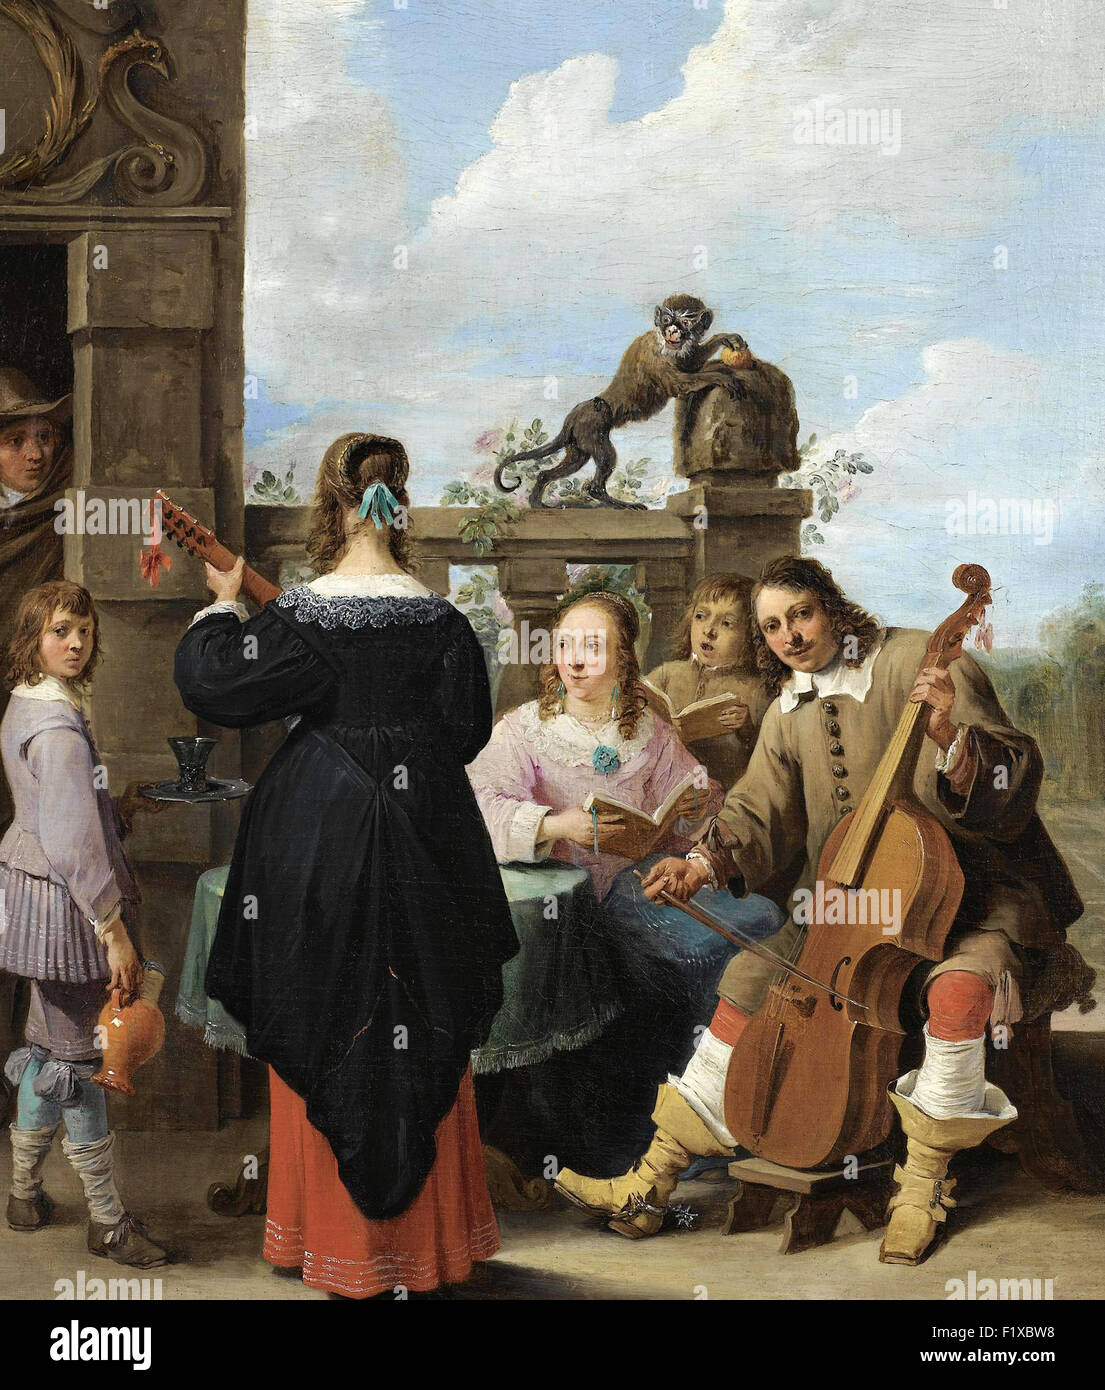 David Teniers the Younger - A Family concert on the Terrace of a country house _ a Self portrait of the Artist with - Stock Image